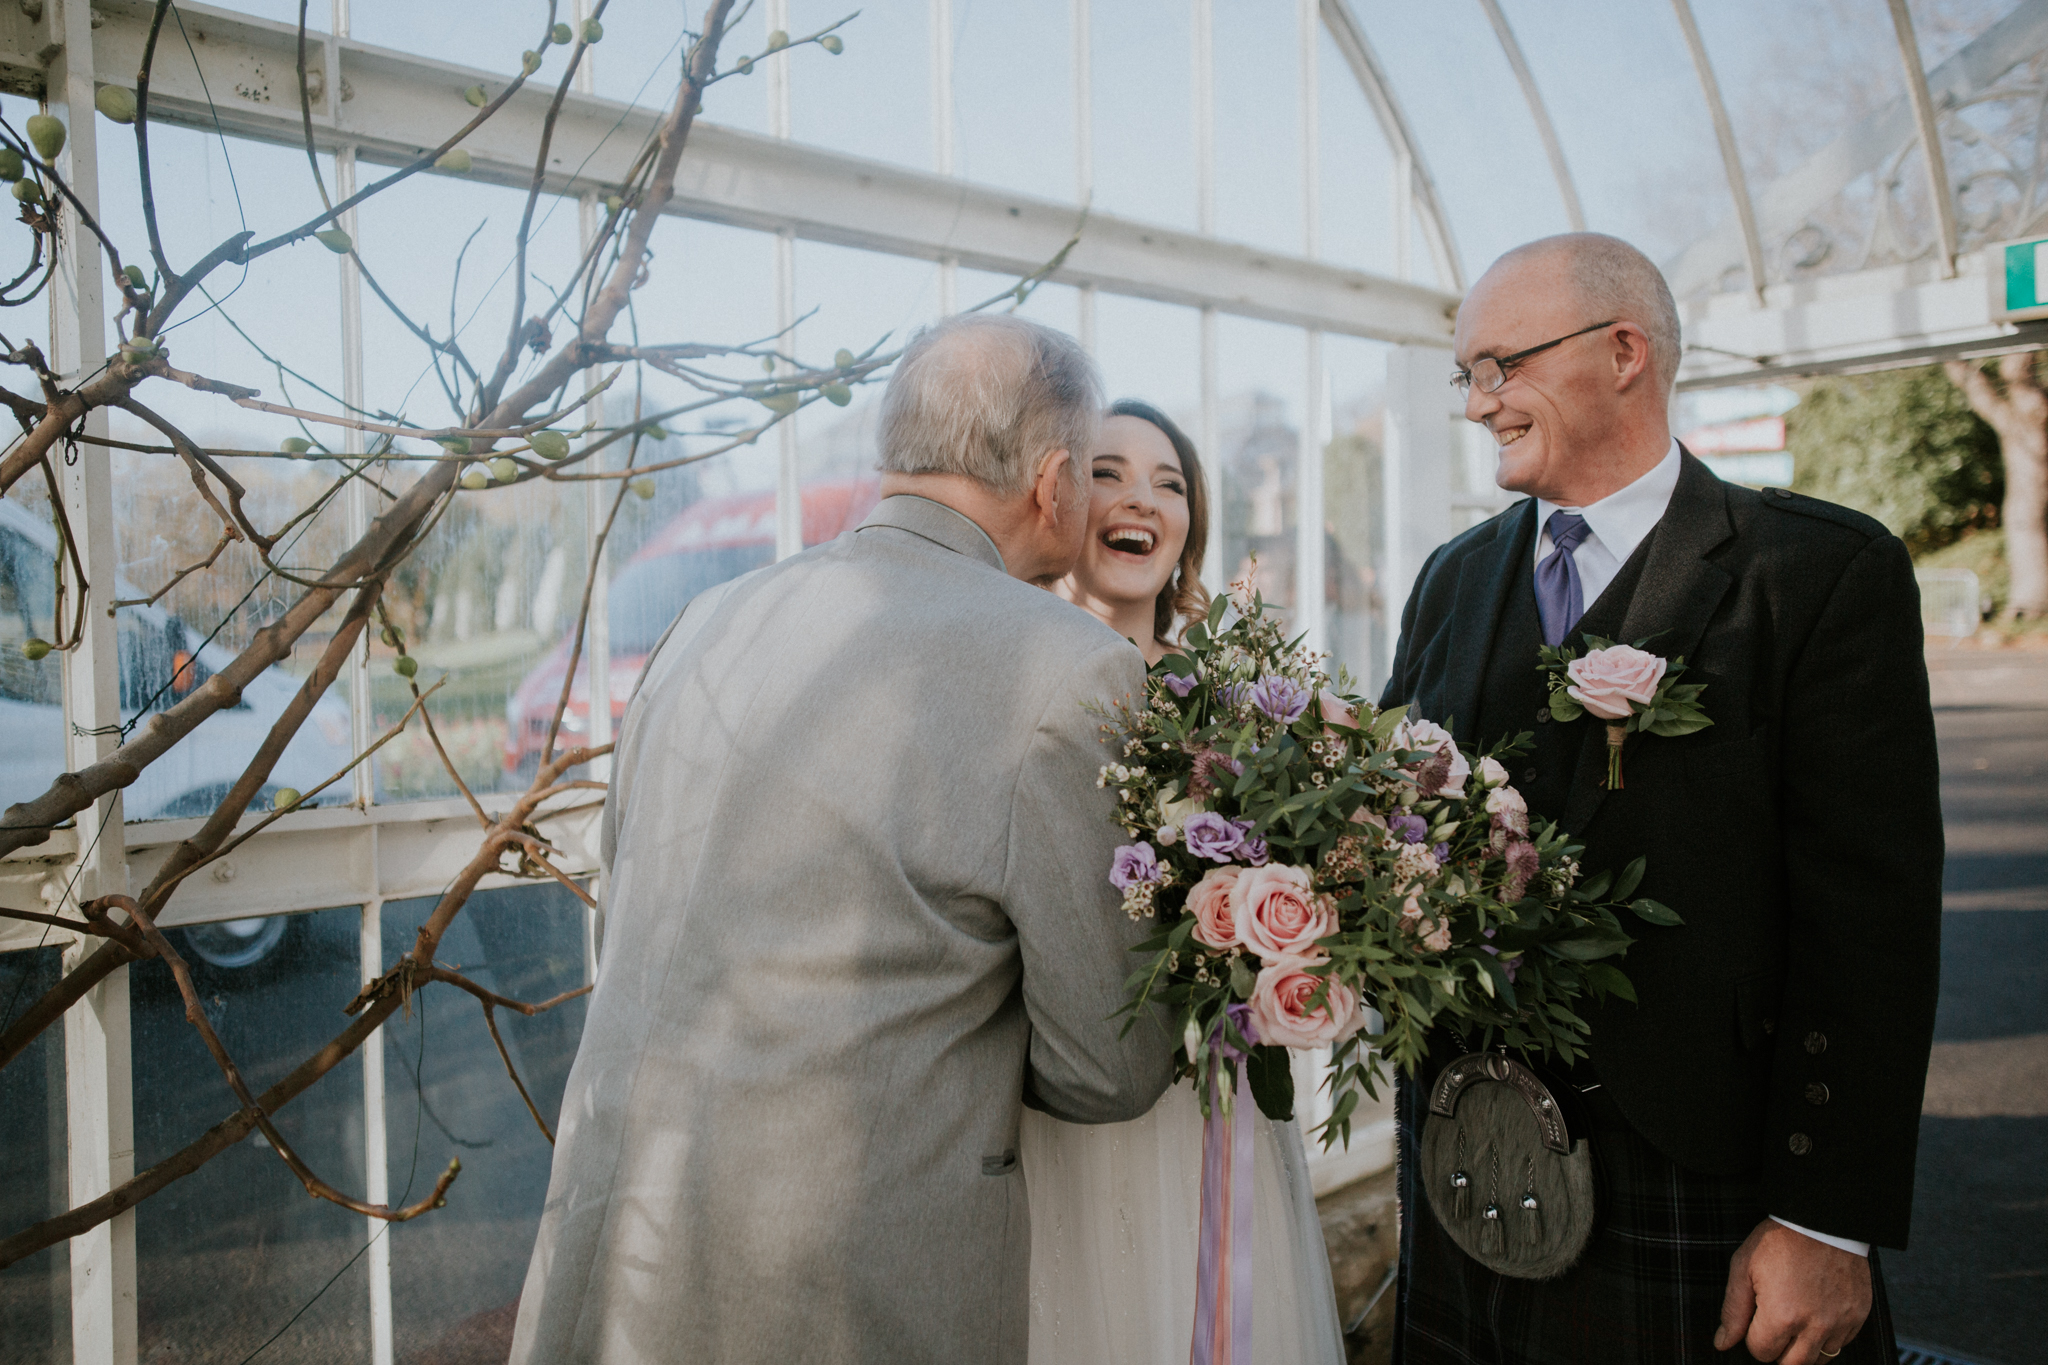 Bride before the ceremony with the father and grand father at the Botanic Gardens in Glasgow